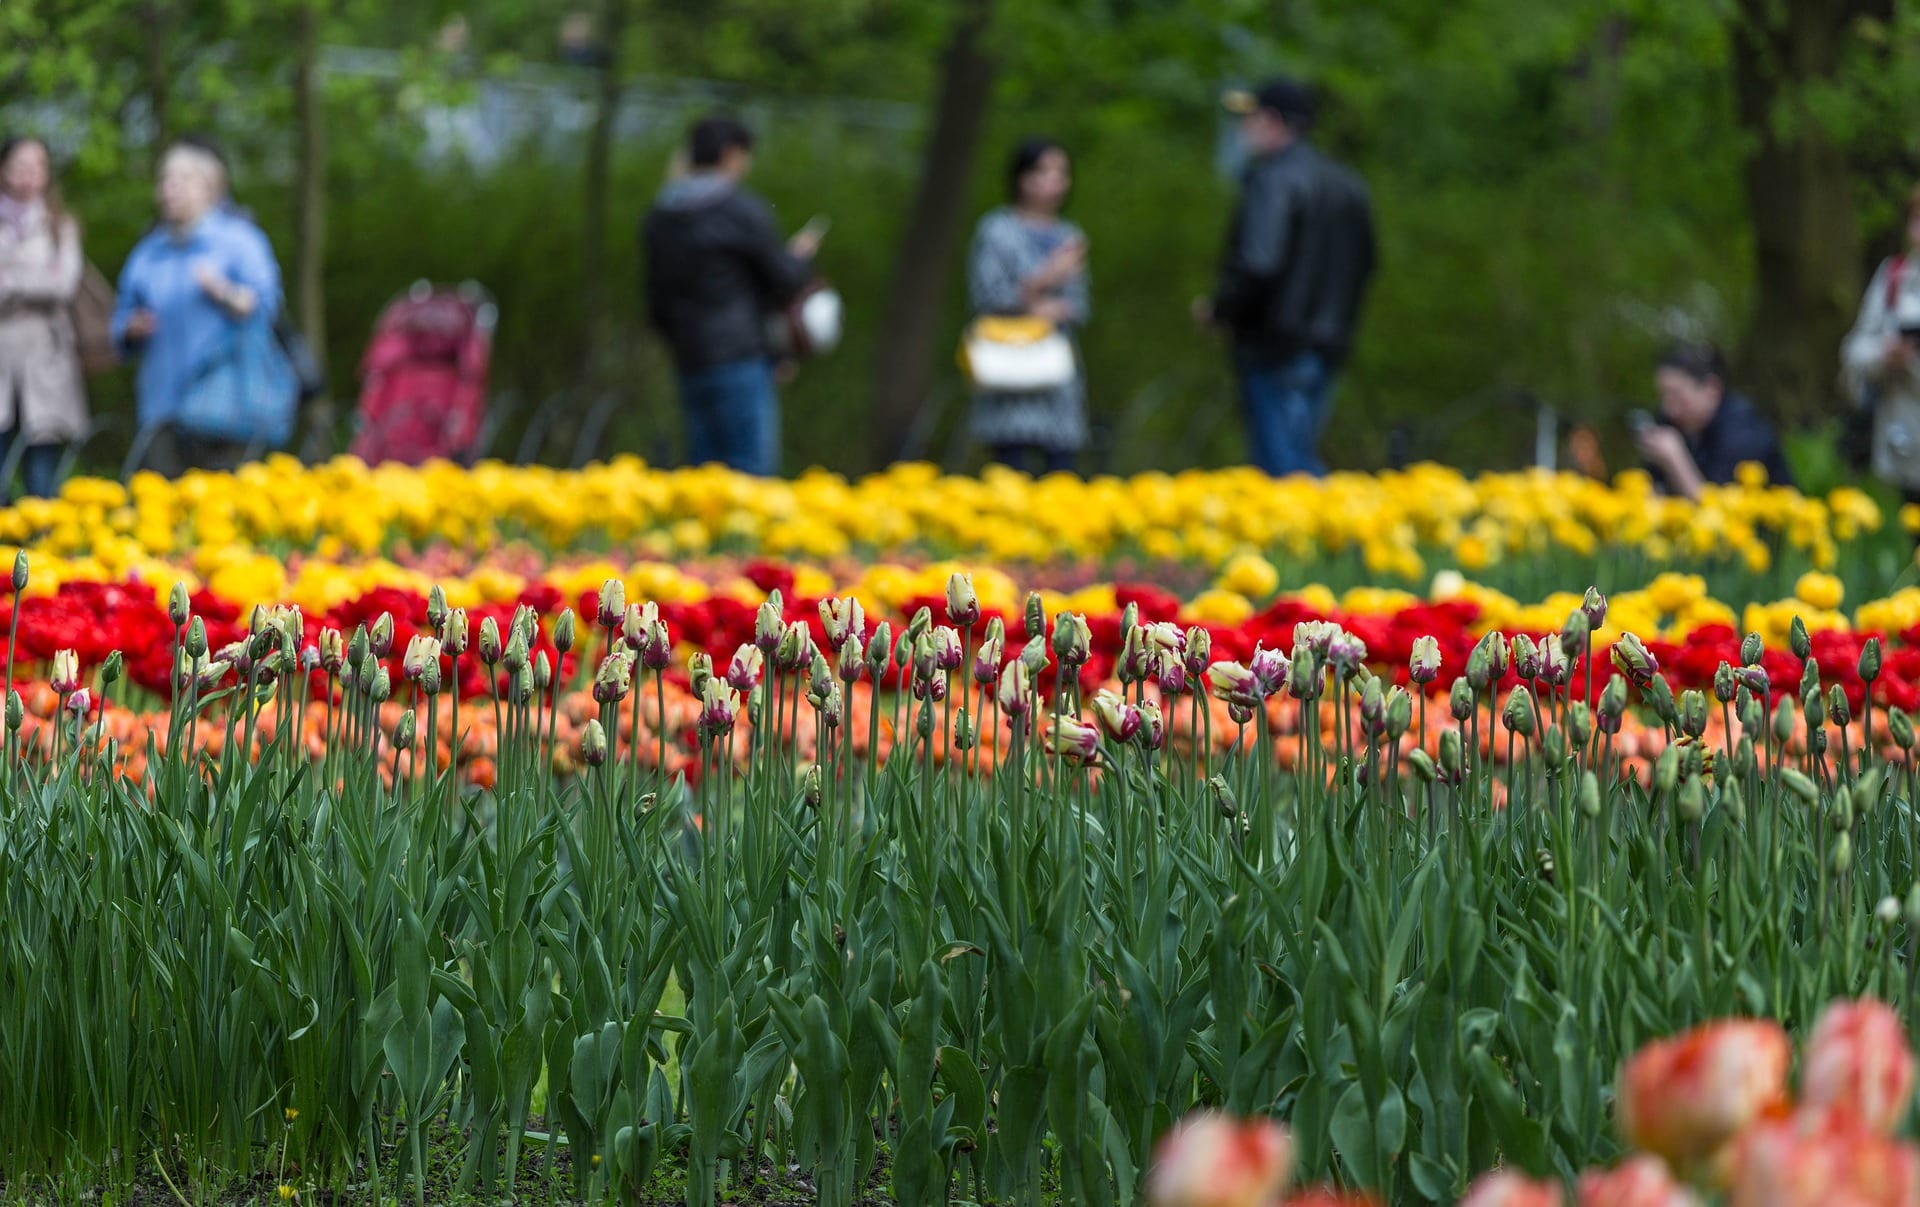 People standing around admiring the flowers in St Stephen's Green Park.